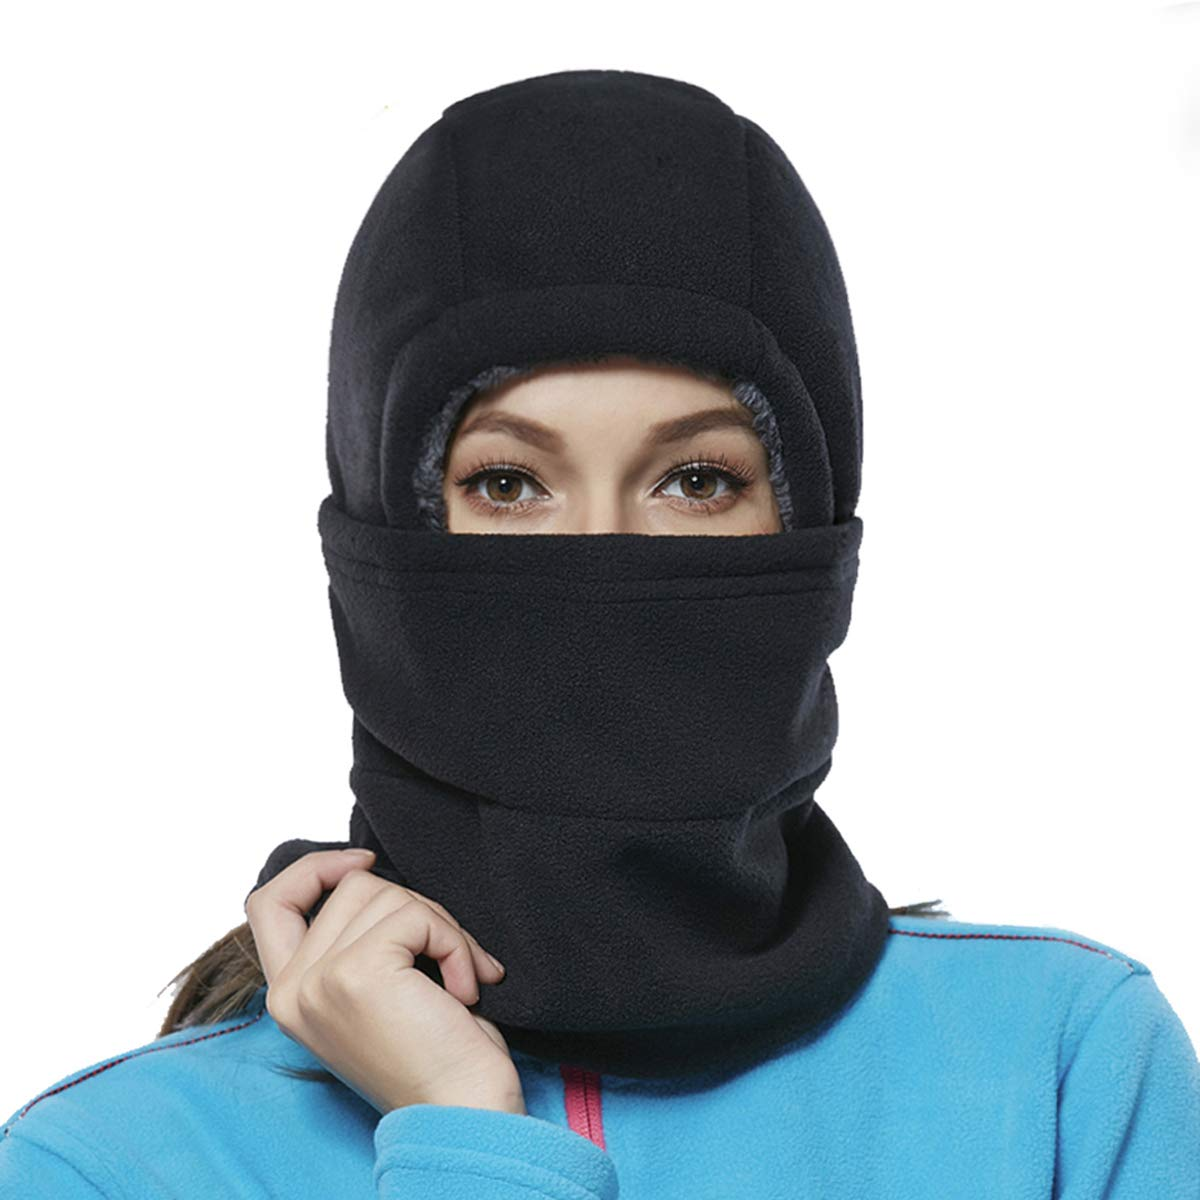 Balaclava Fleece Hood for Women Kids Thick Ski Face Mask Cold Weather Winter Warmer Windproof Adjustable Neck Protective Cycling Running Black